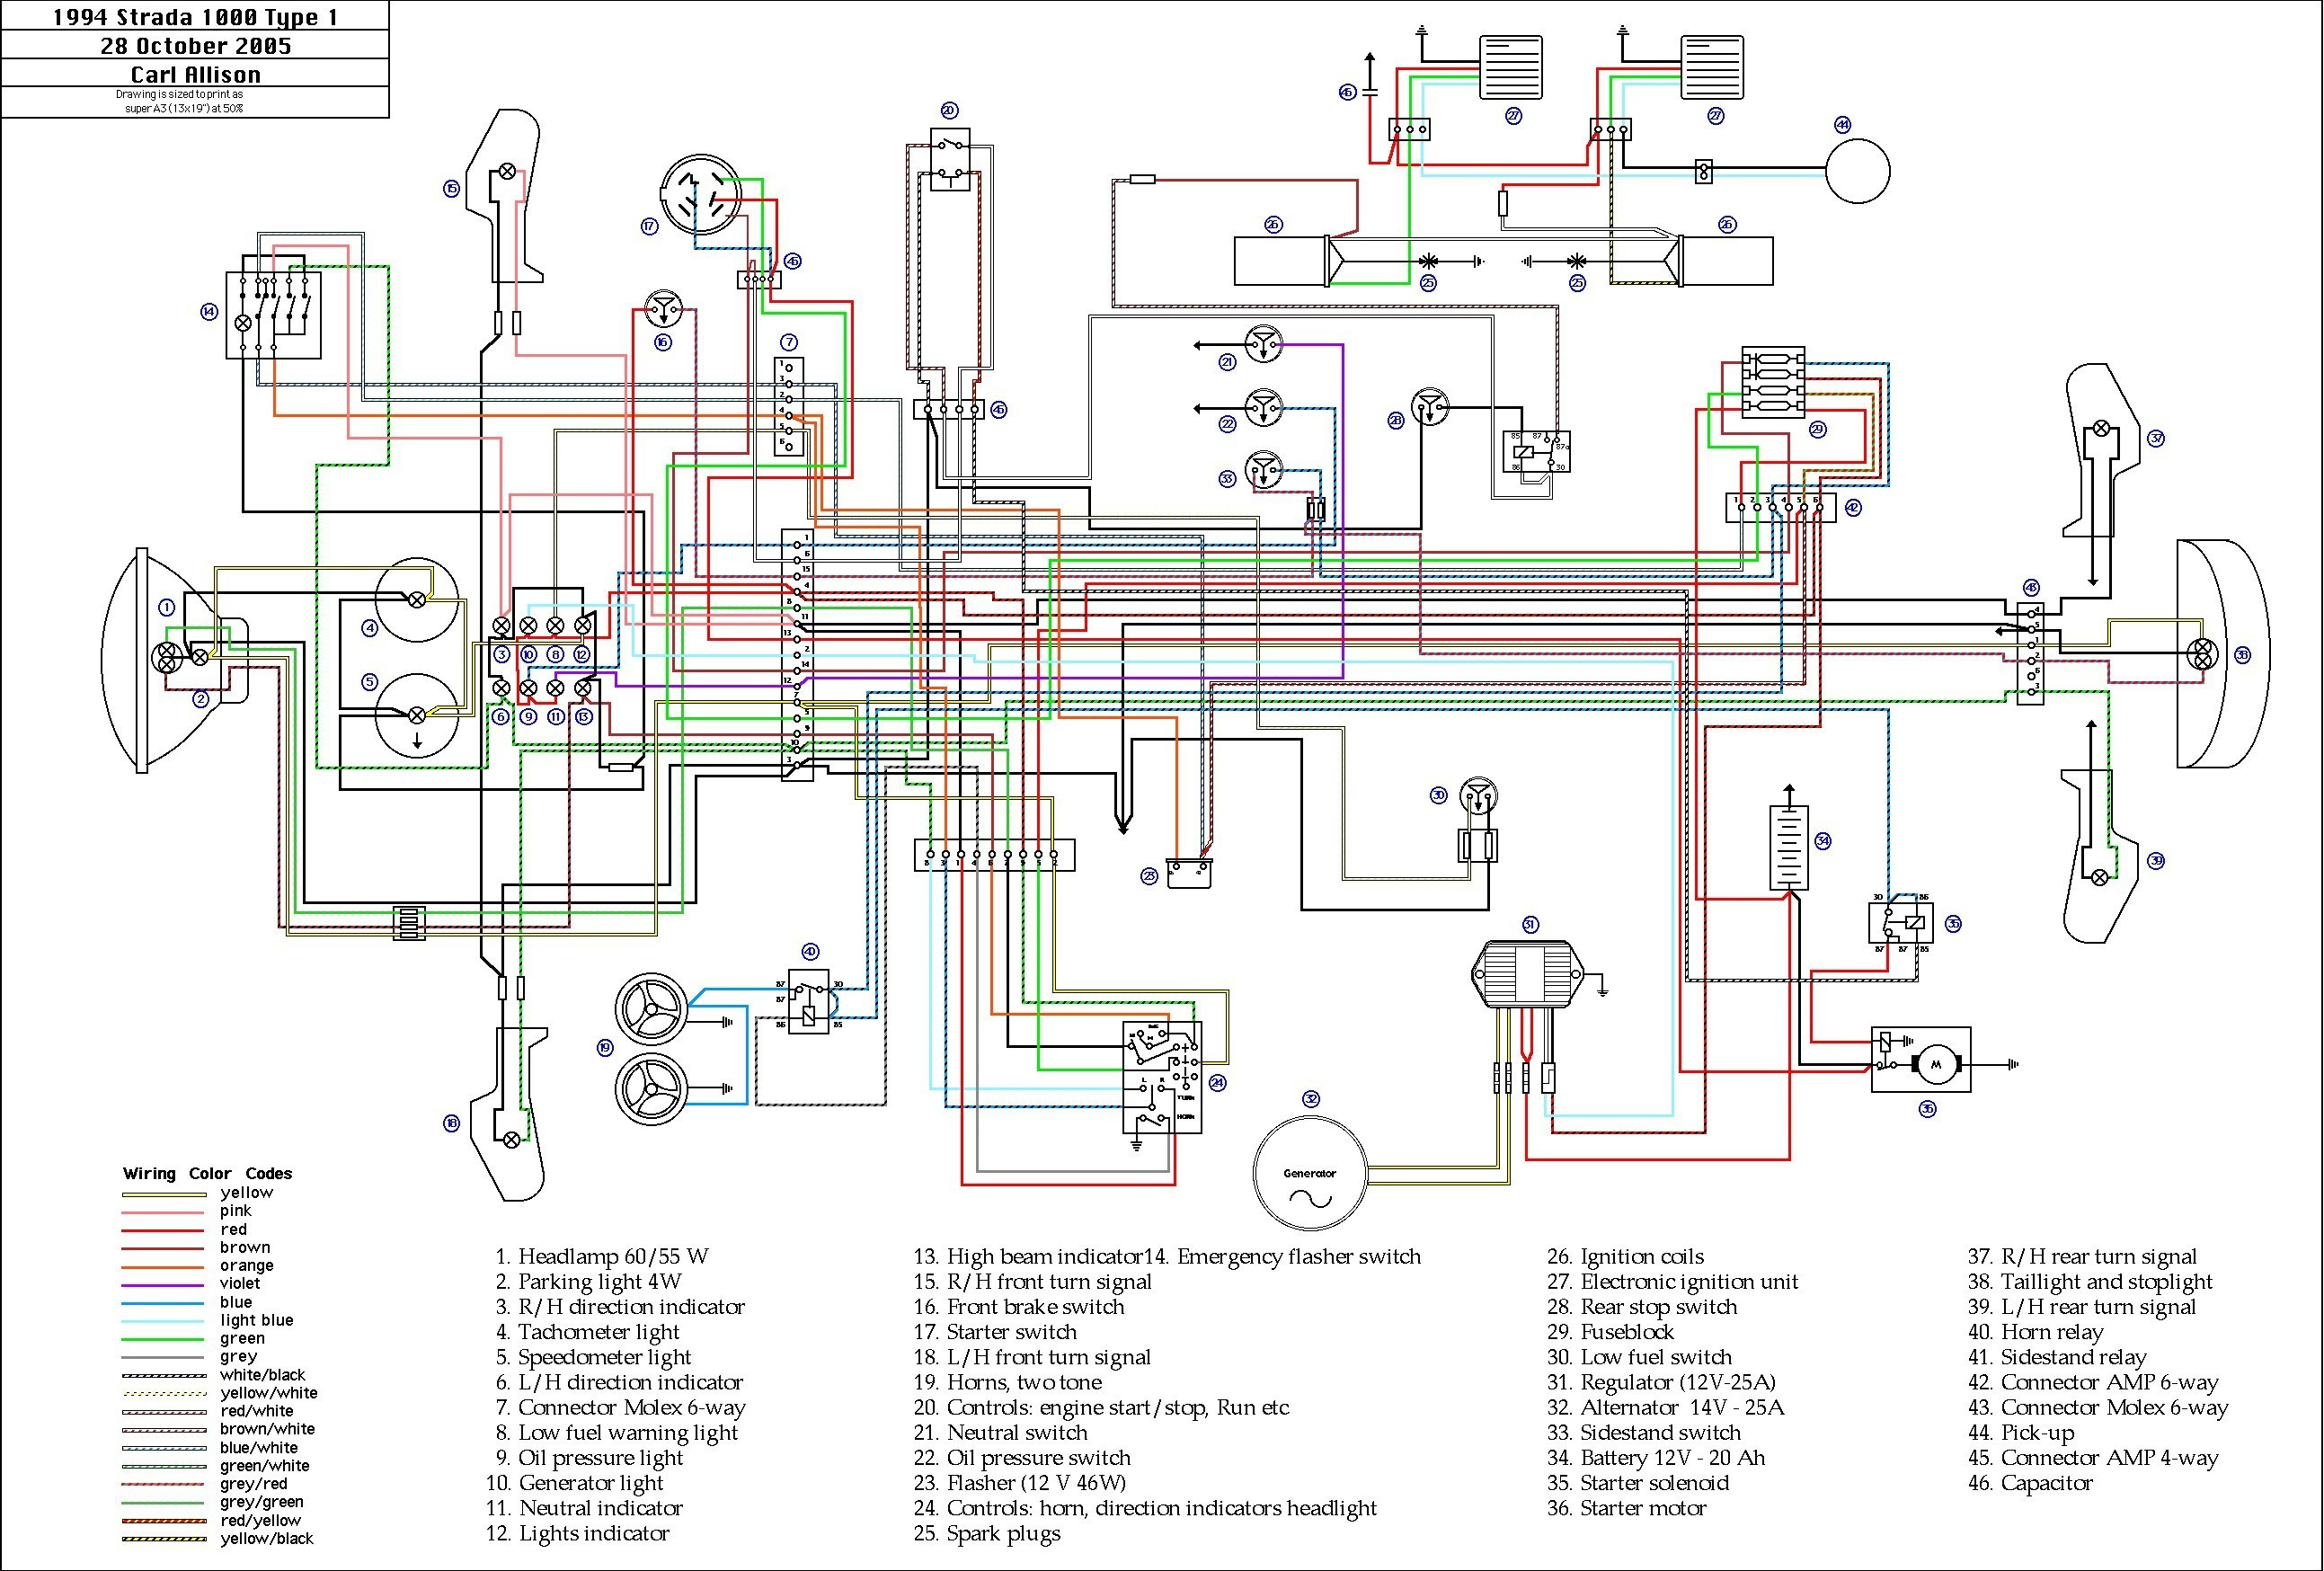 Start Stop Switch Wiring Diagram from 2020cadillac.com